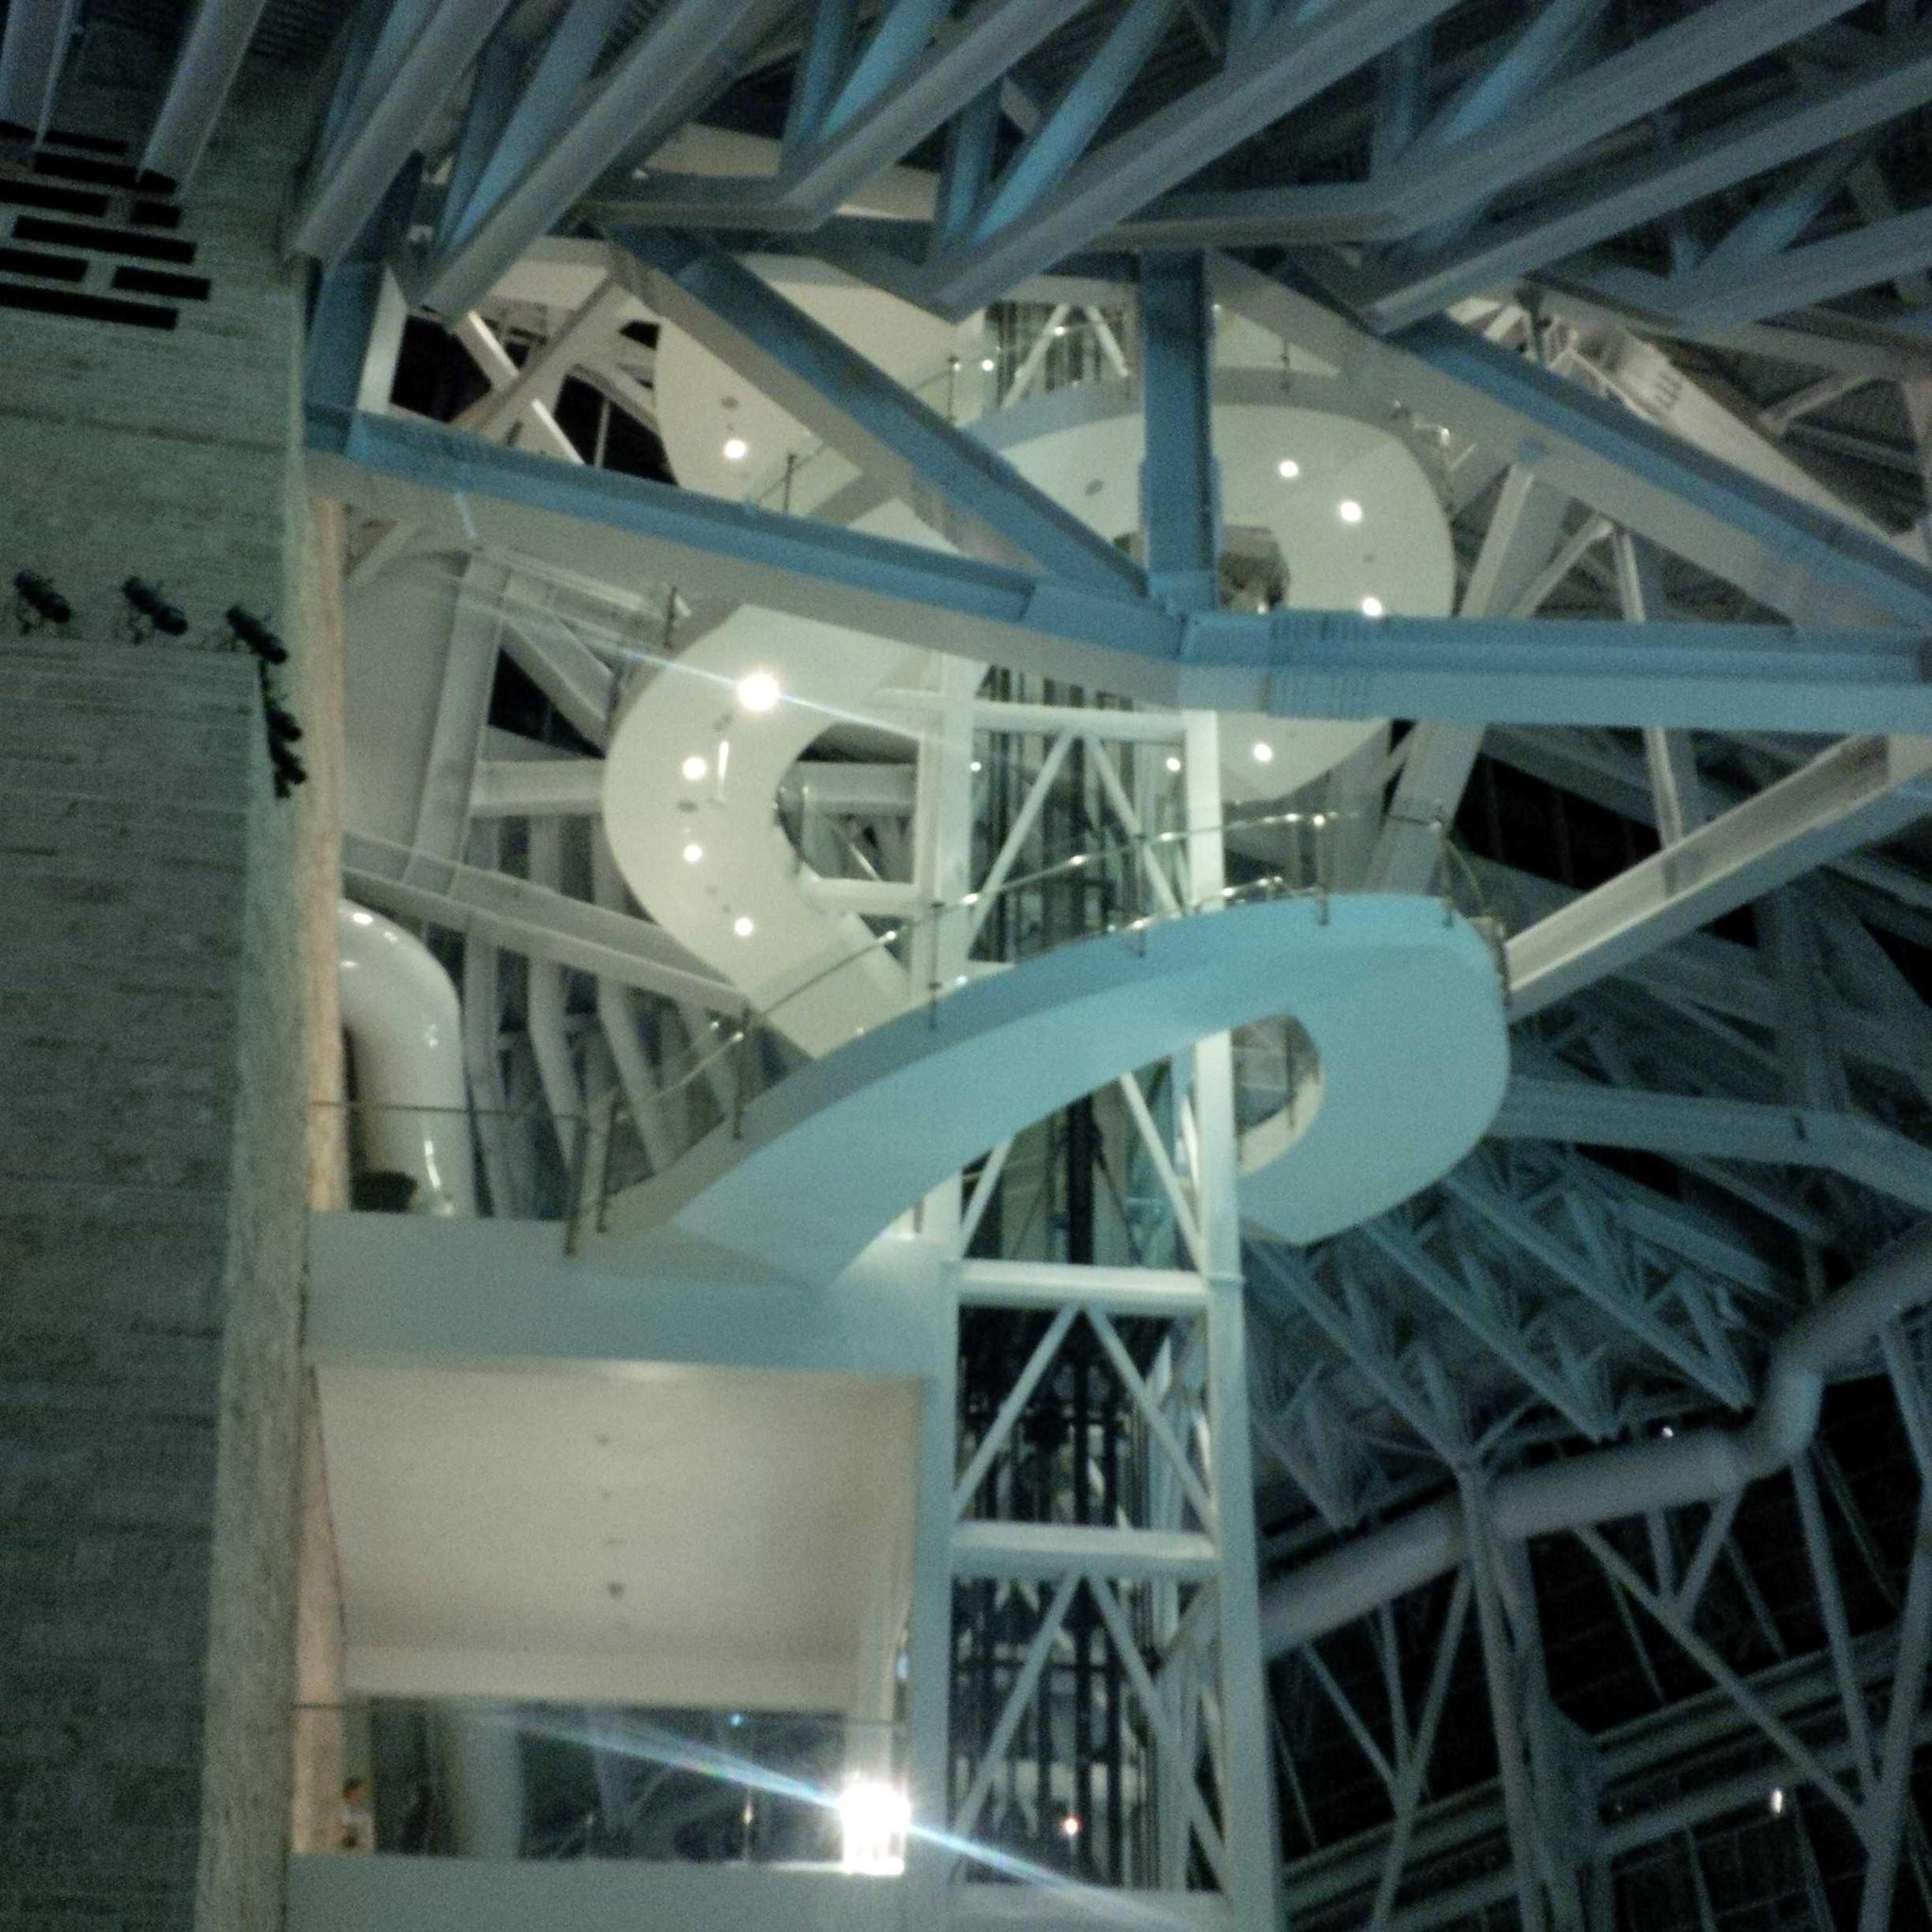 The spiral staircase up to the Tower of Hope @CMHR_News http://t.co/m0SpuQg21G